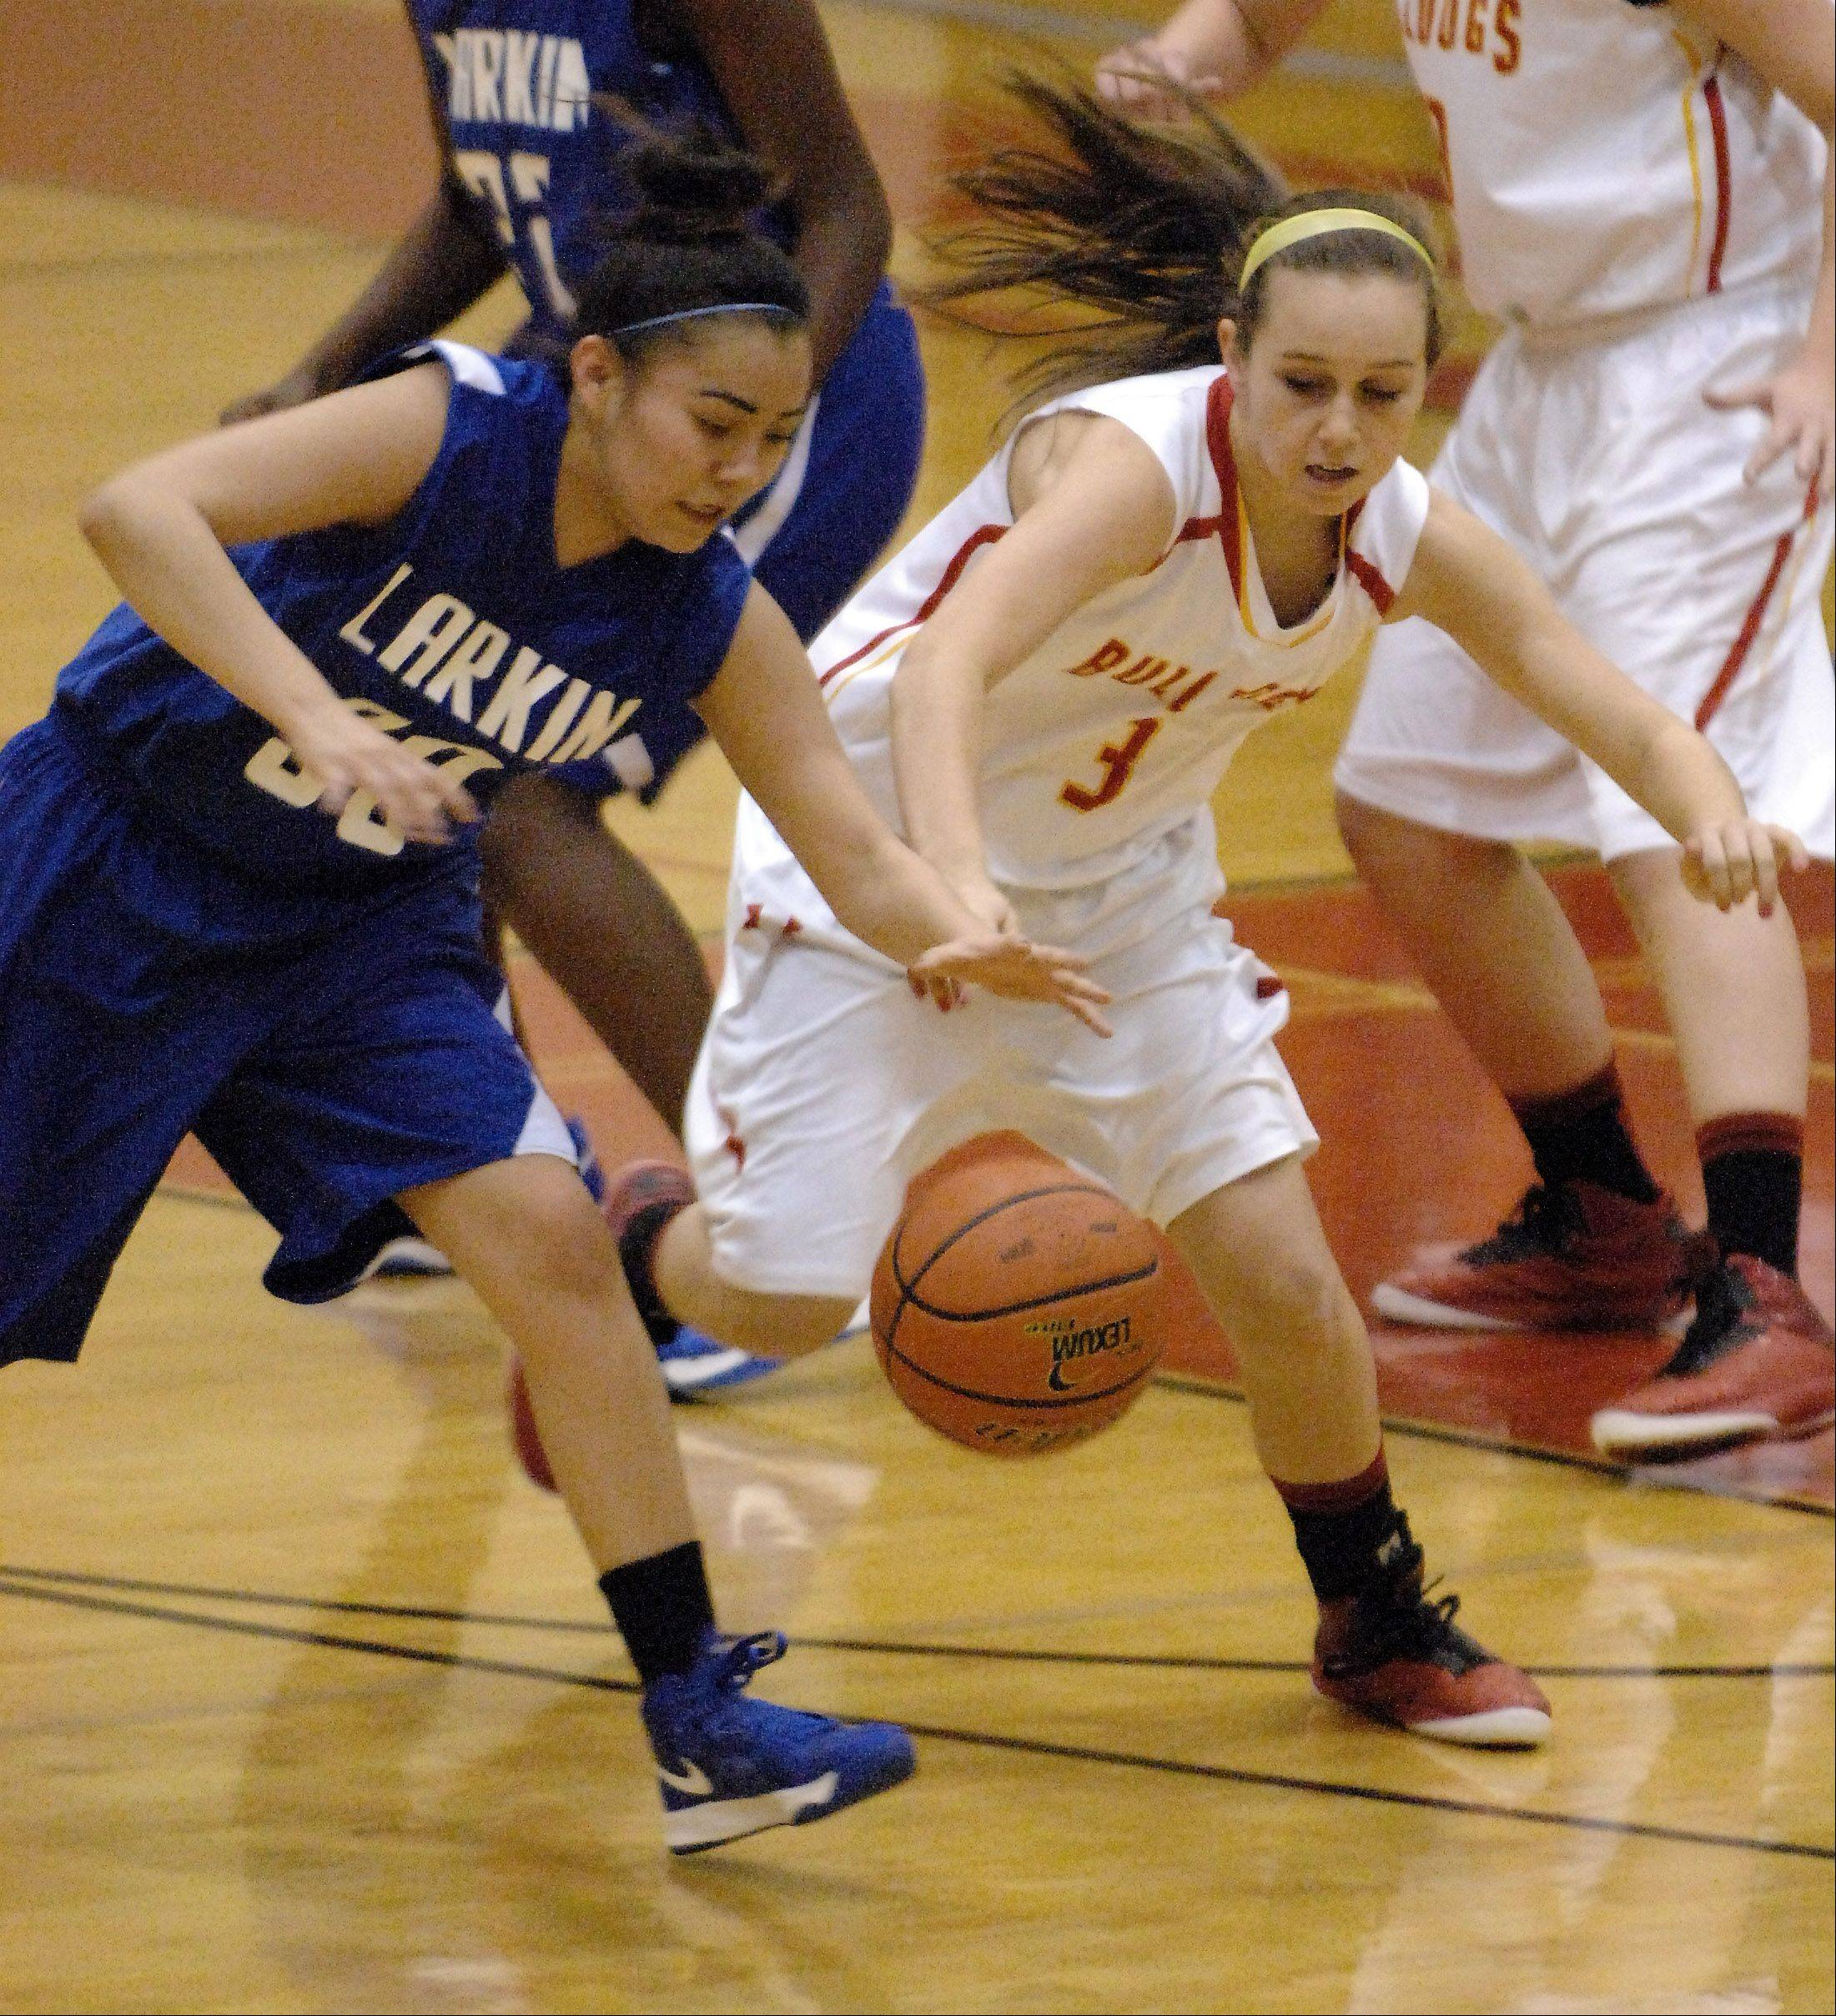 Batavia's Bethany Orman and Larkin's Sky Evans battle for a loose ball.